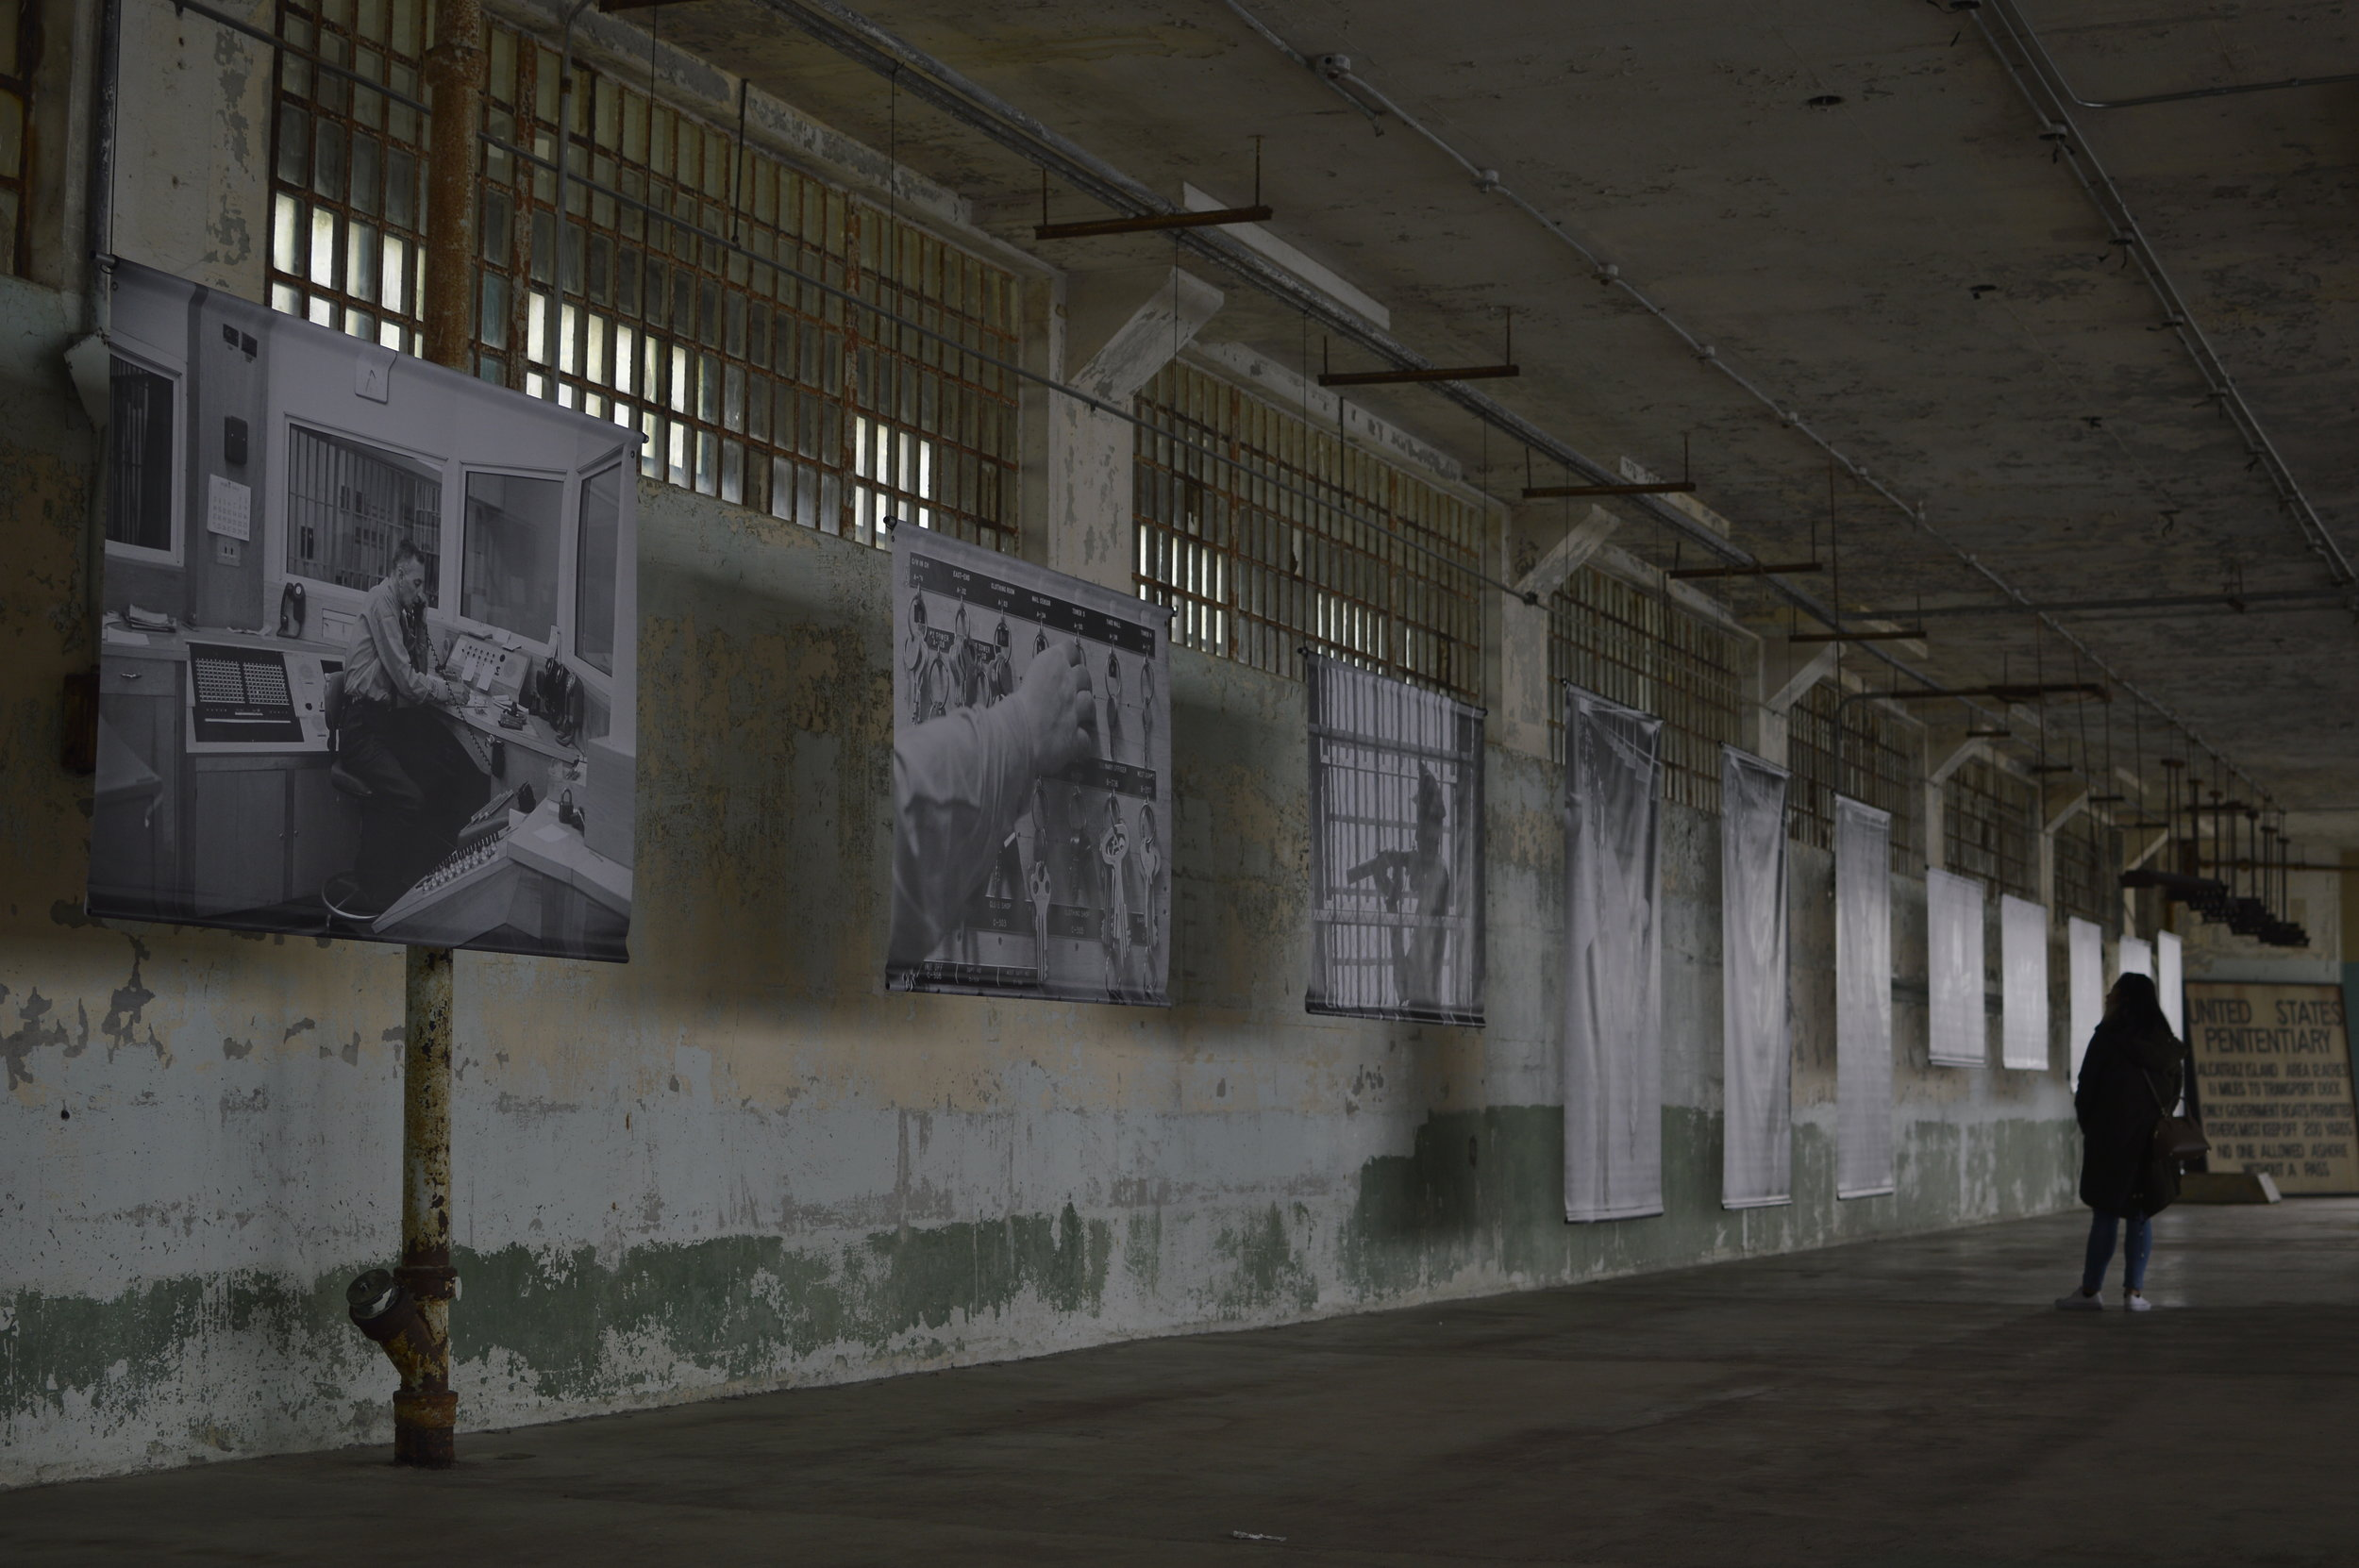 Alcatraz Island - photography exhibition of photos by Leigh Wiener. Above photo taken by me - March 2017